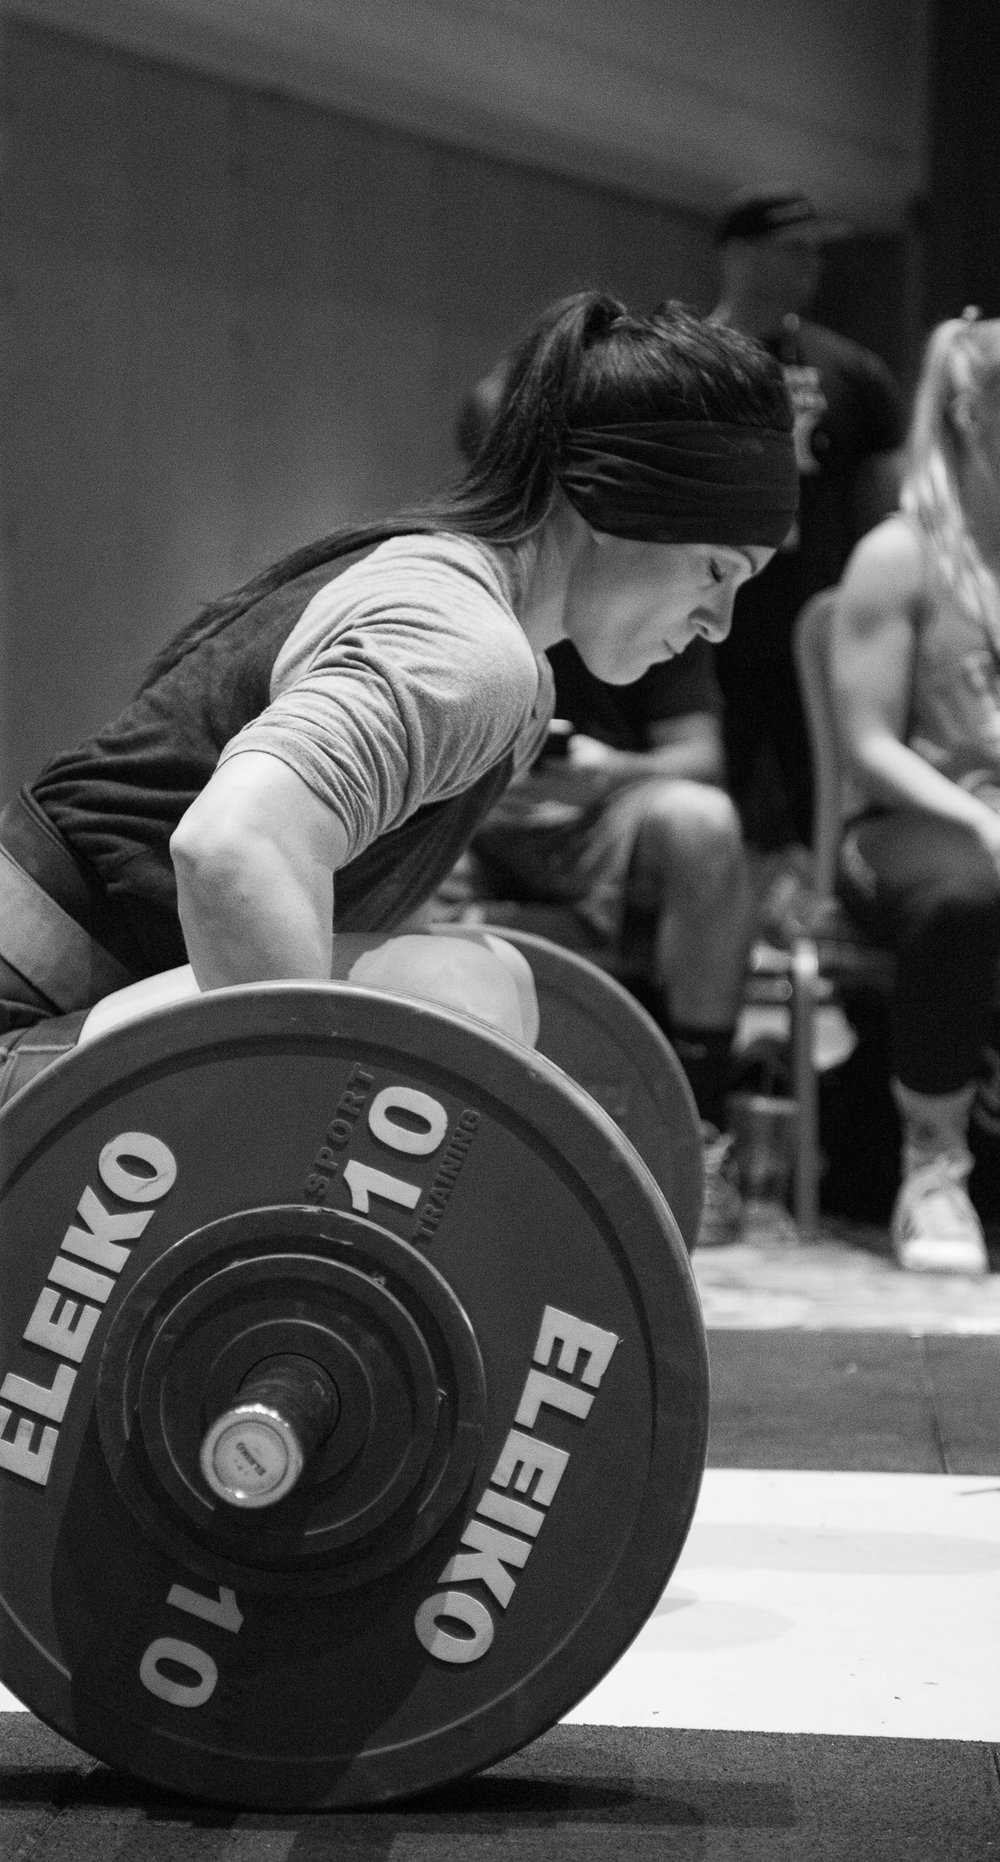 session-a-favorites-american-open-2016-weightlifting-photography (25 of 38).jpg